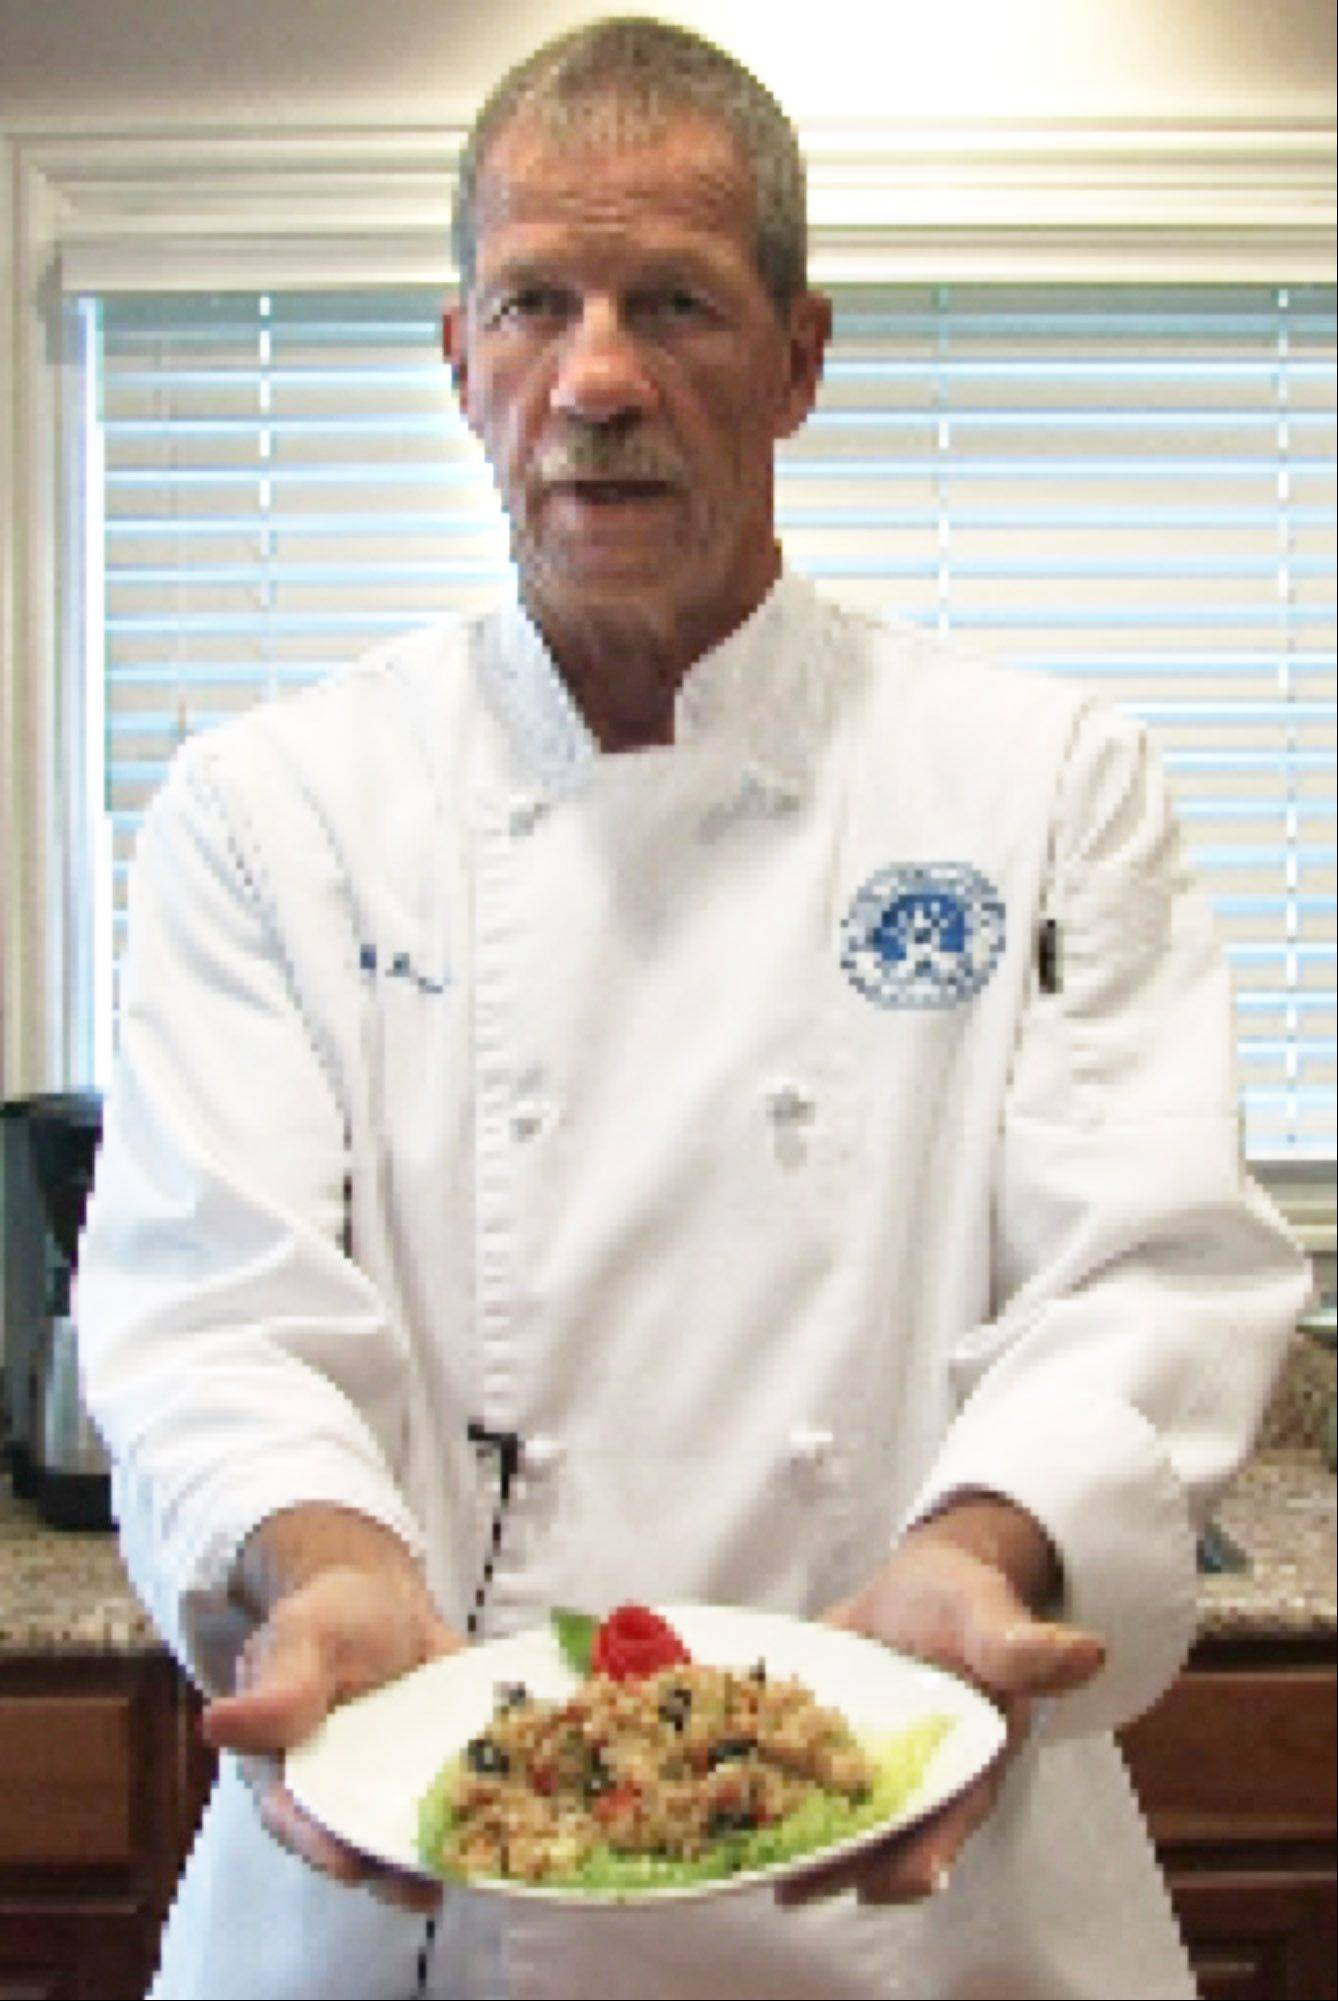 To fill the hours during his retirement, Dan Bessler takes culinary classes at Elgin Community College. His quinoa salad won a competition at the college earlier this year.